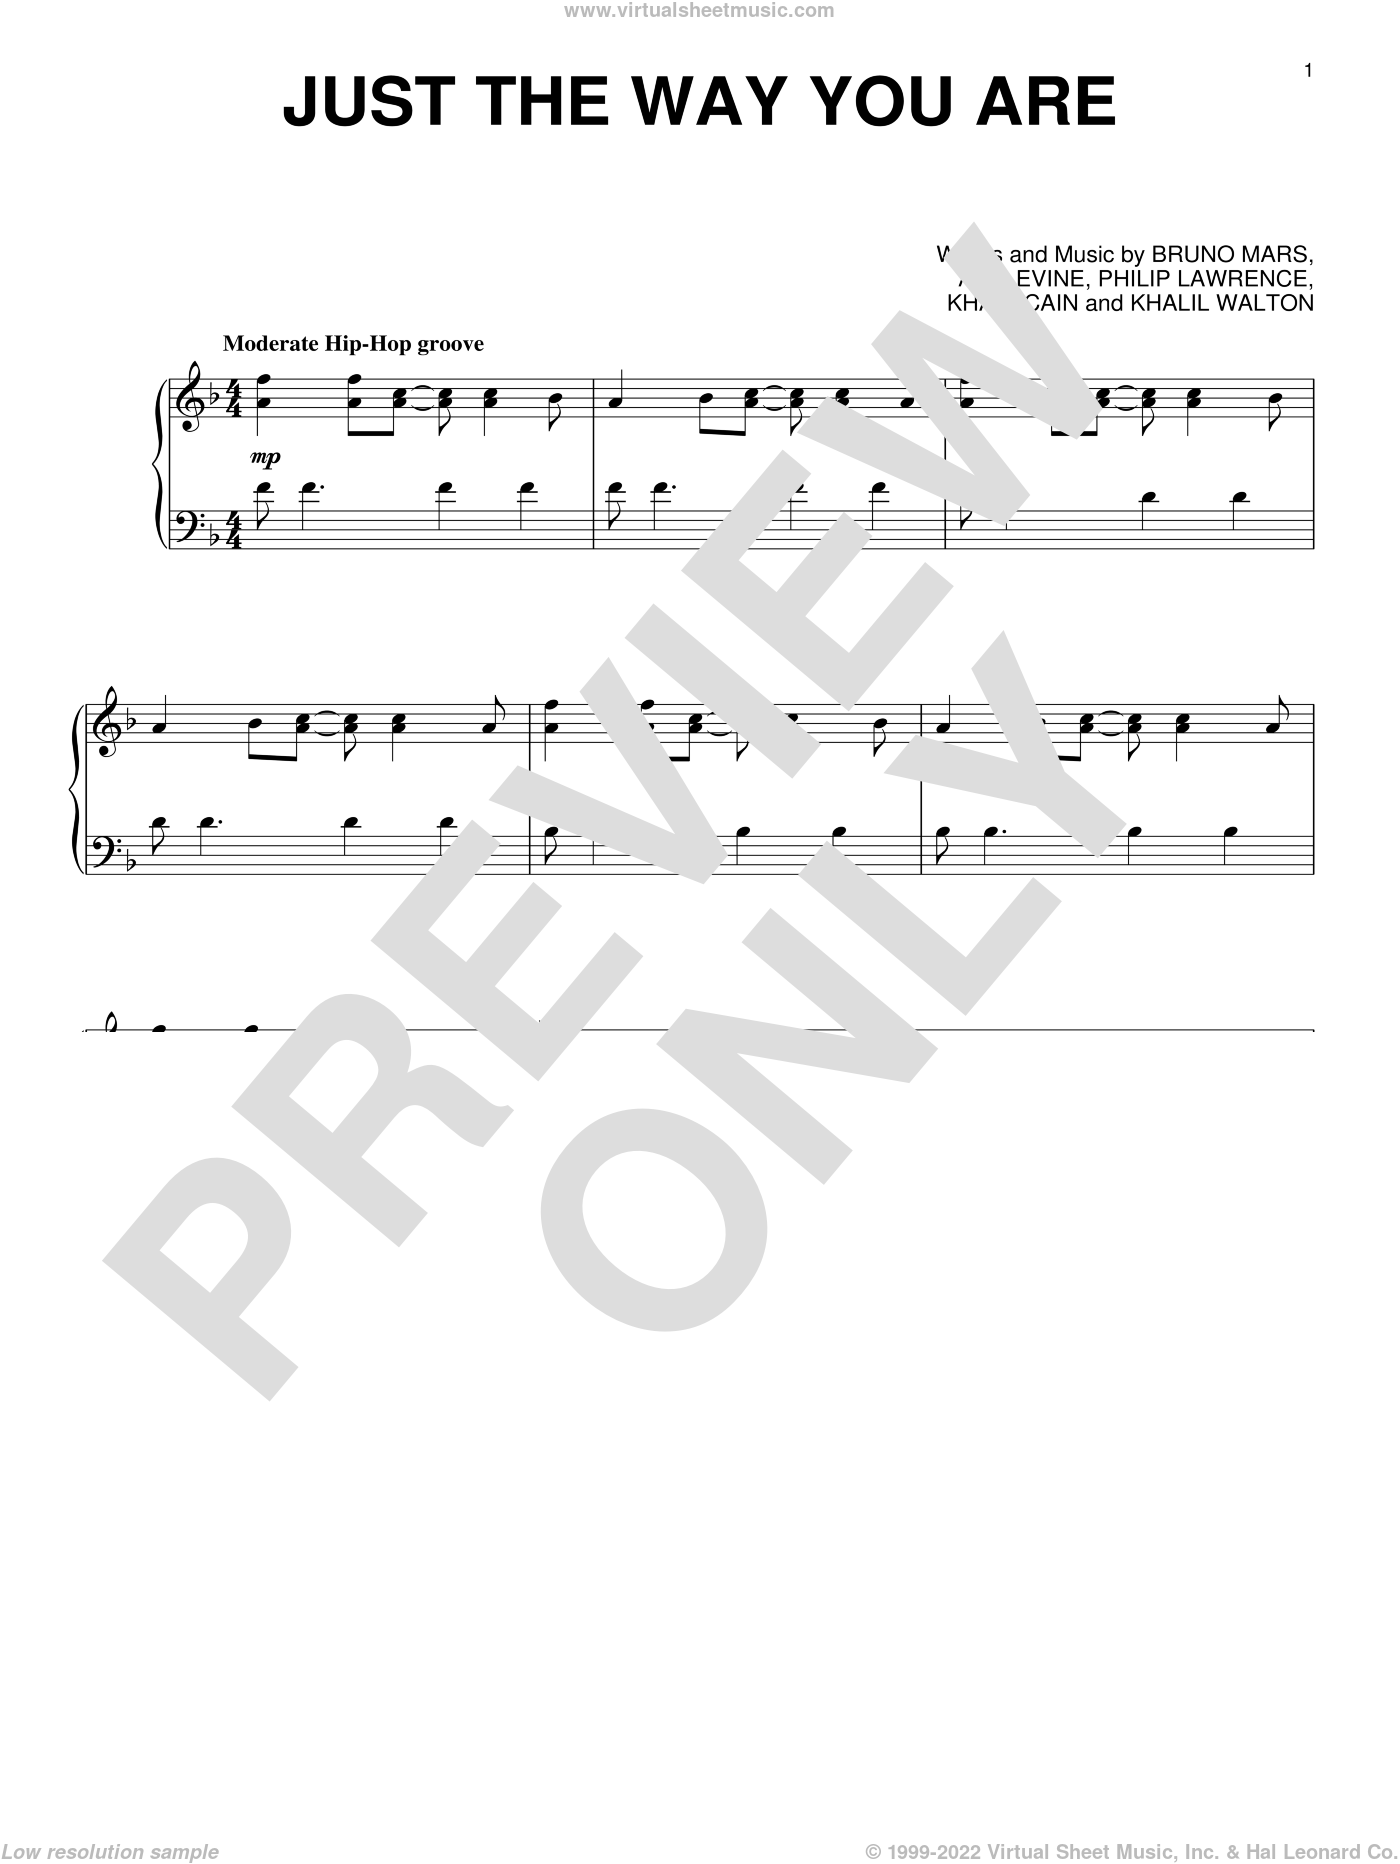 Just The Way You Are, (intermediate) sheet music for piano solo by Bruno Mars, Ari Levine, Khalil Walton, Khari Cain and Philip Lawrence, intermediate skill level